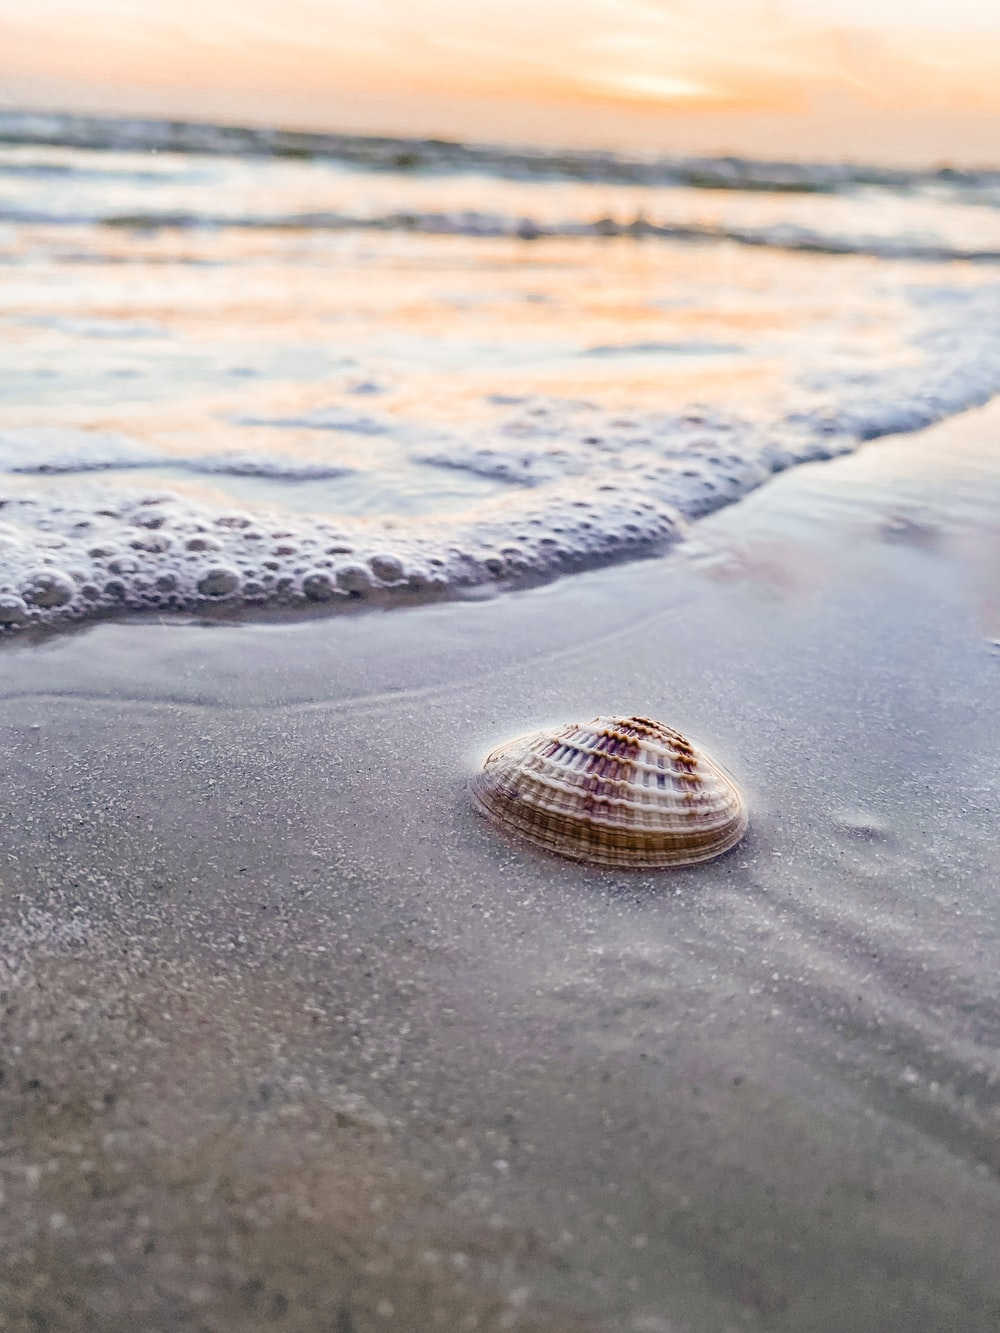 brown and white seashell on beach during daytime